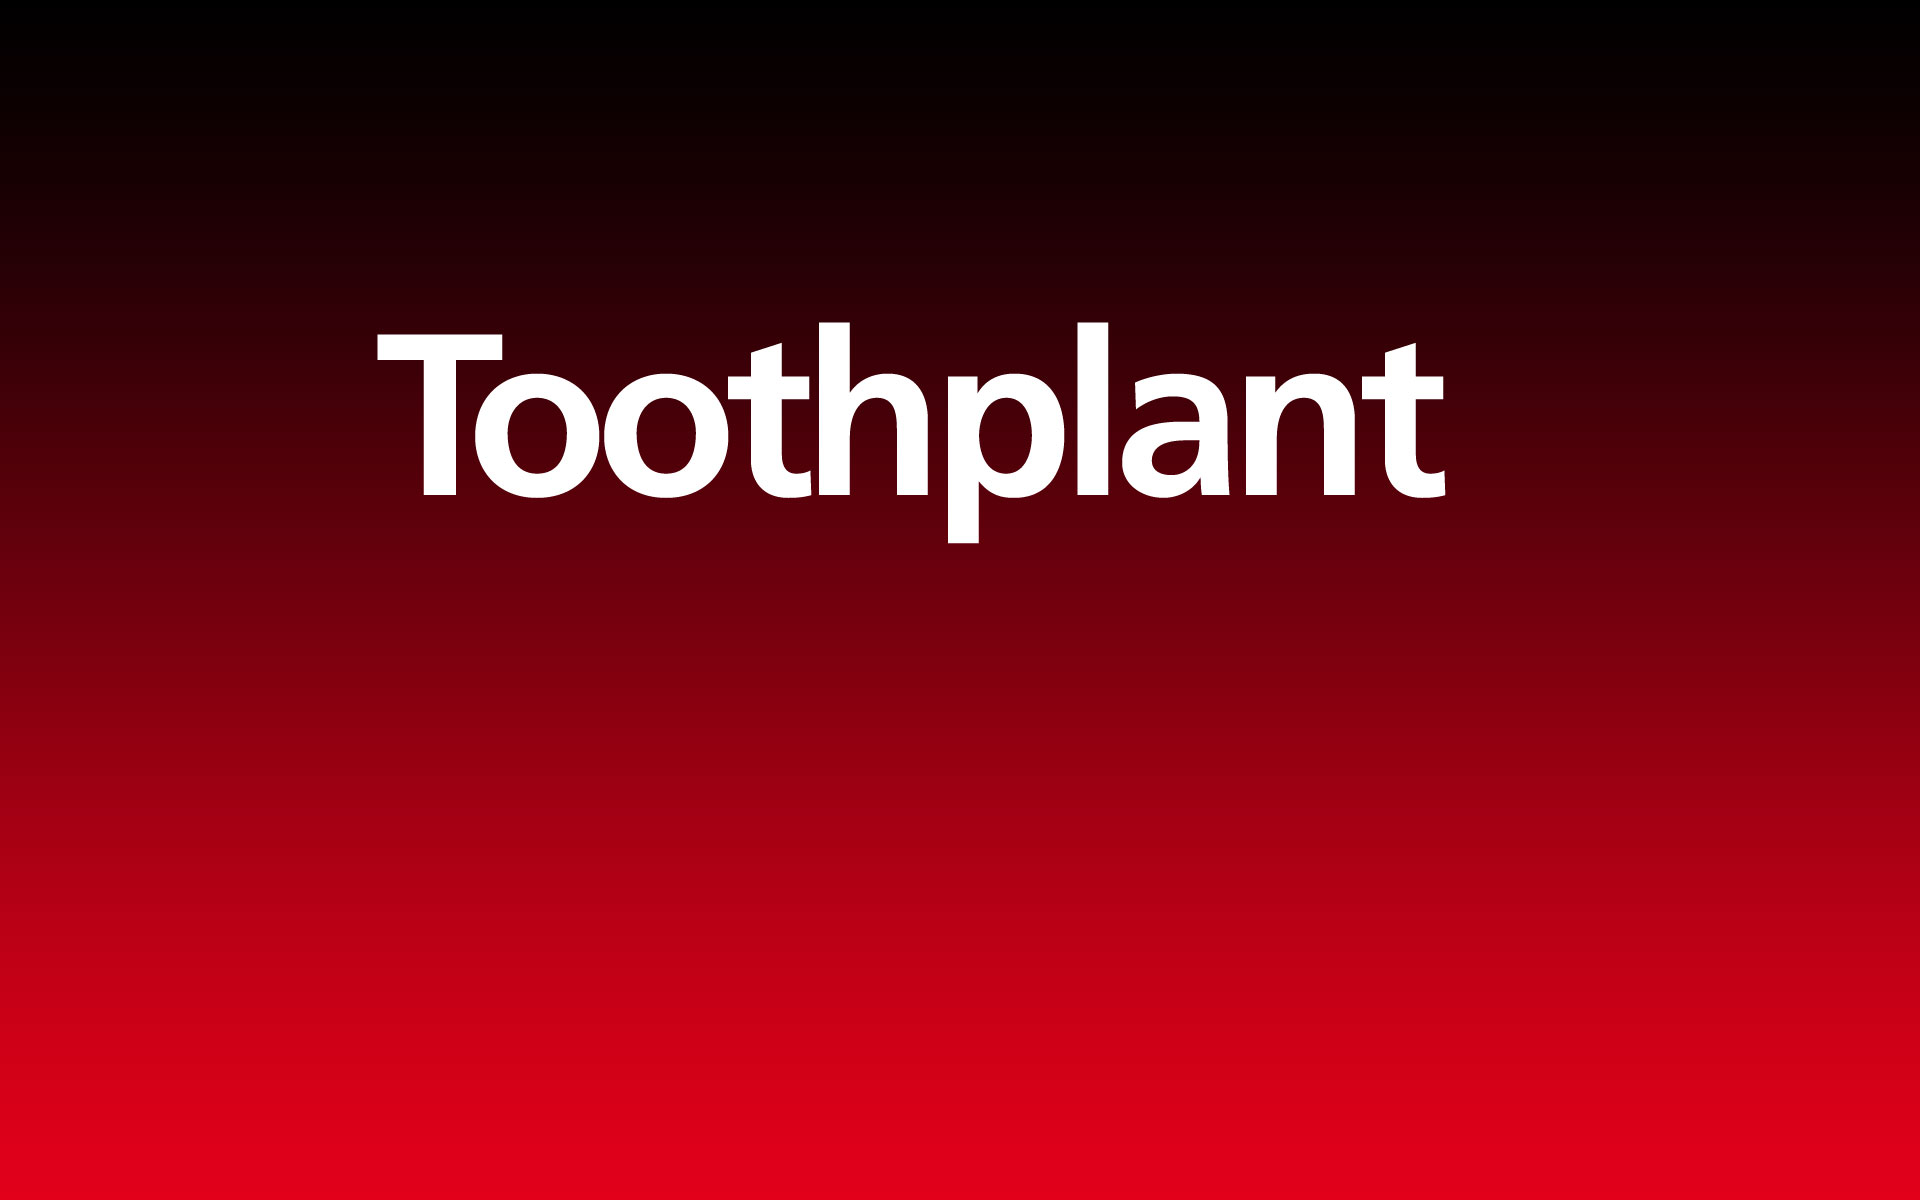 Mehrhof Dental Technologies – Toothplant